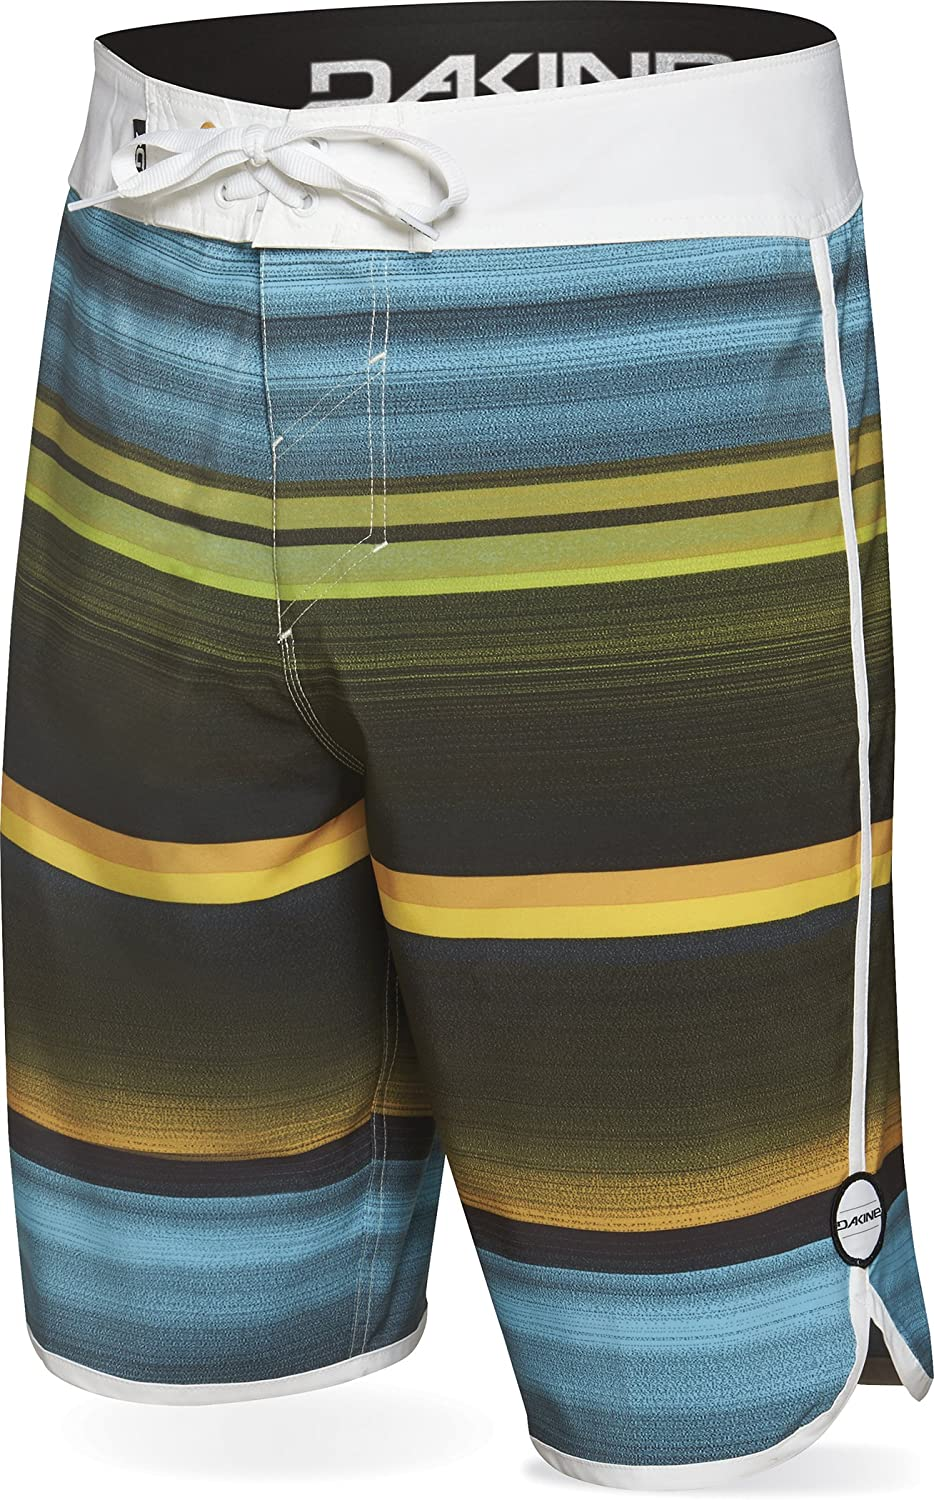 Dakine Men's Haze Boardshorts, Sunset, 30